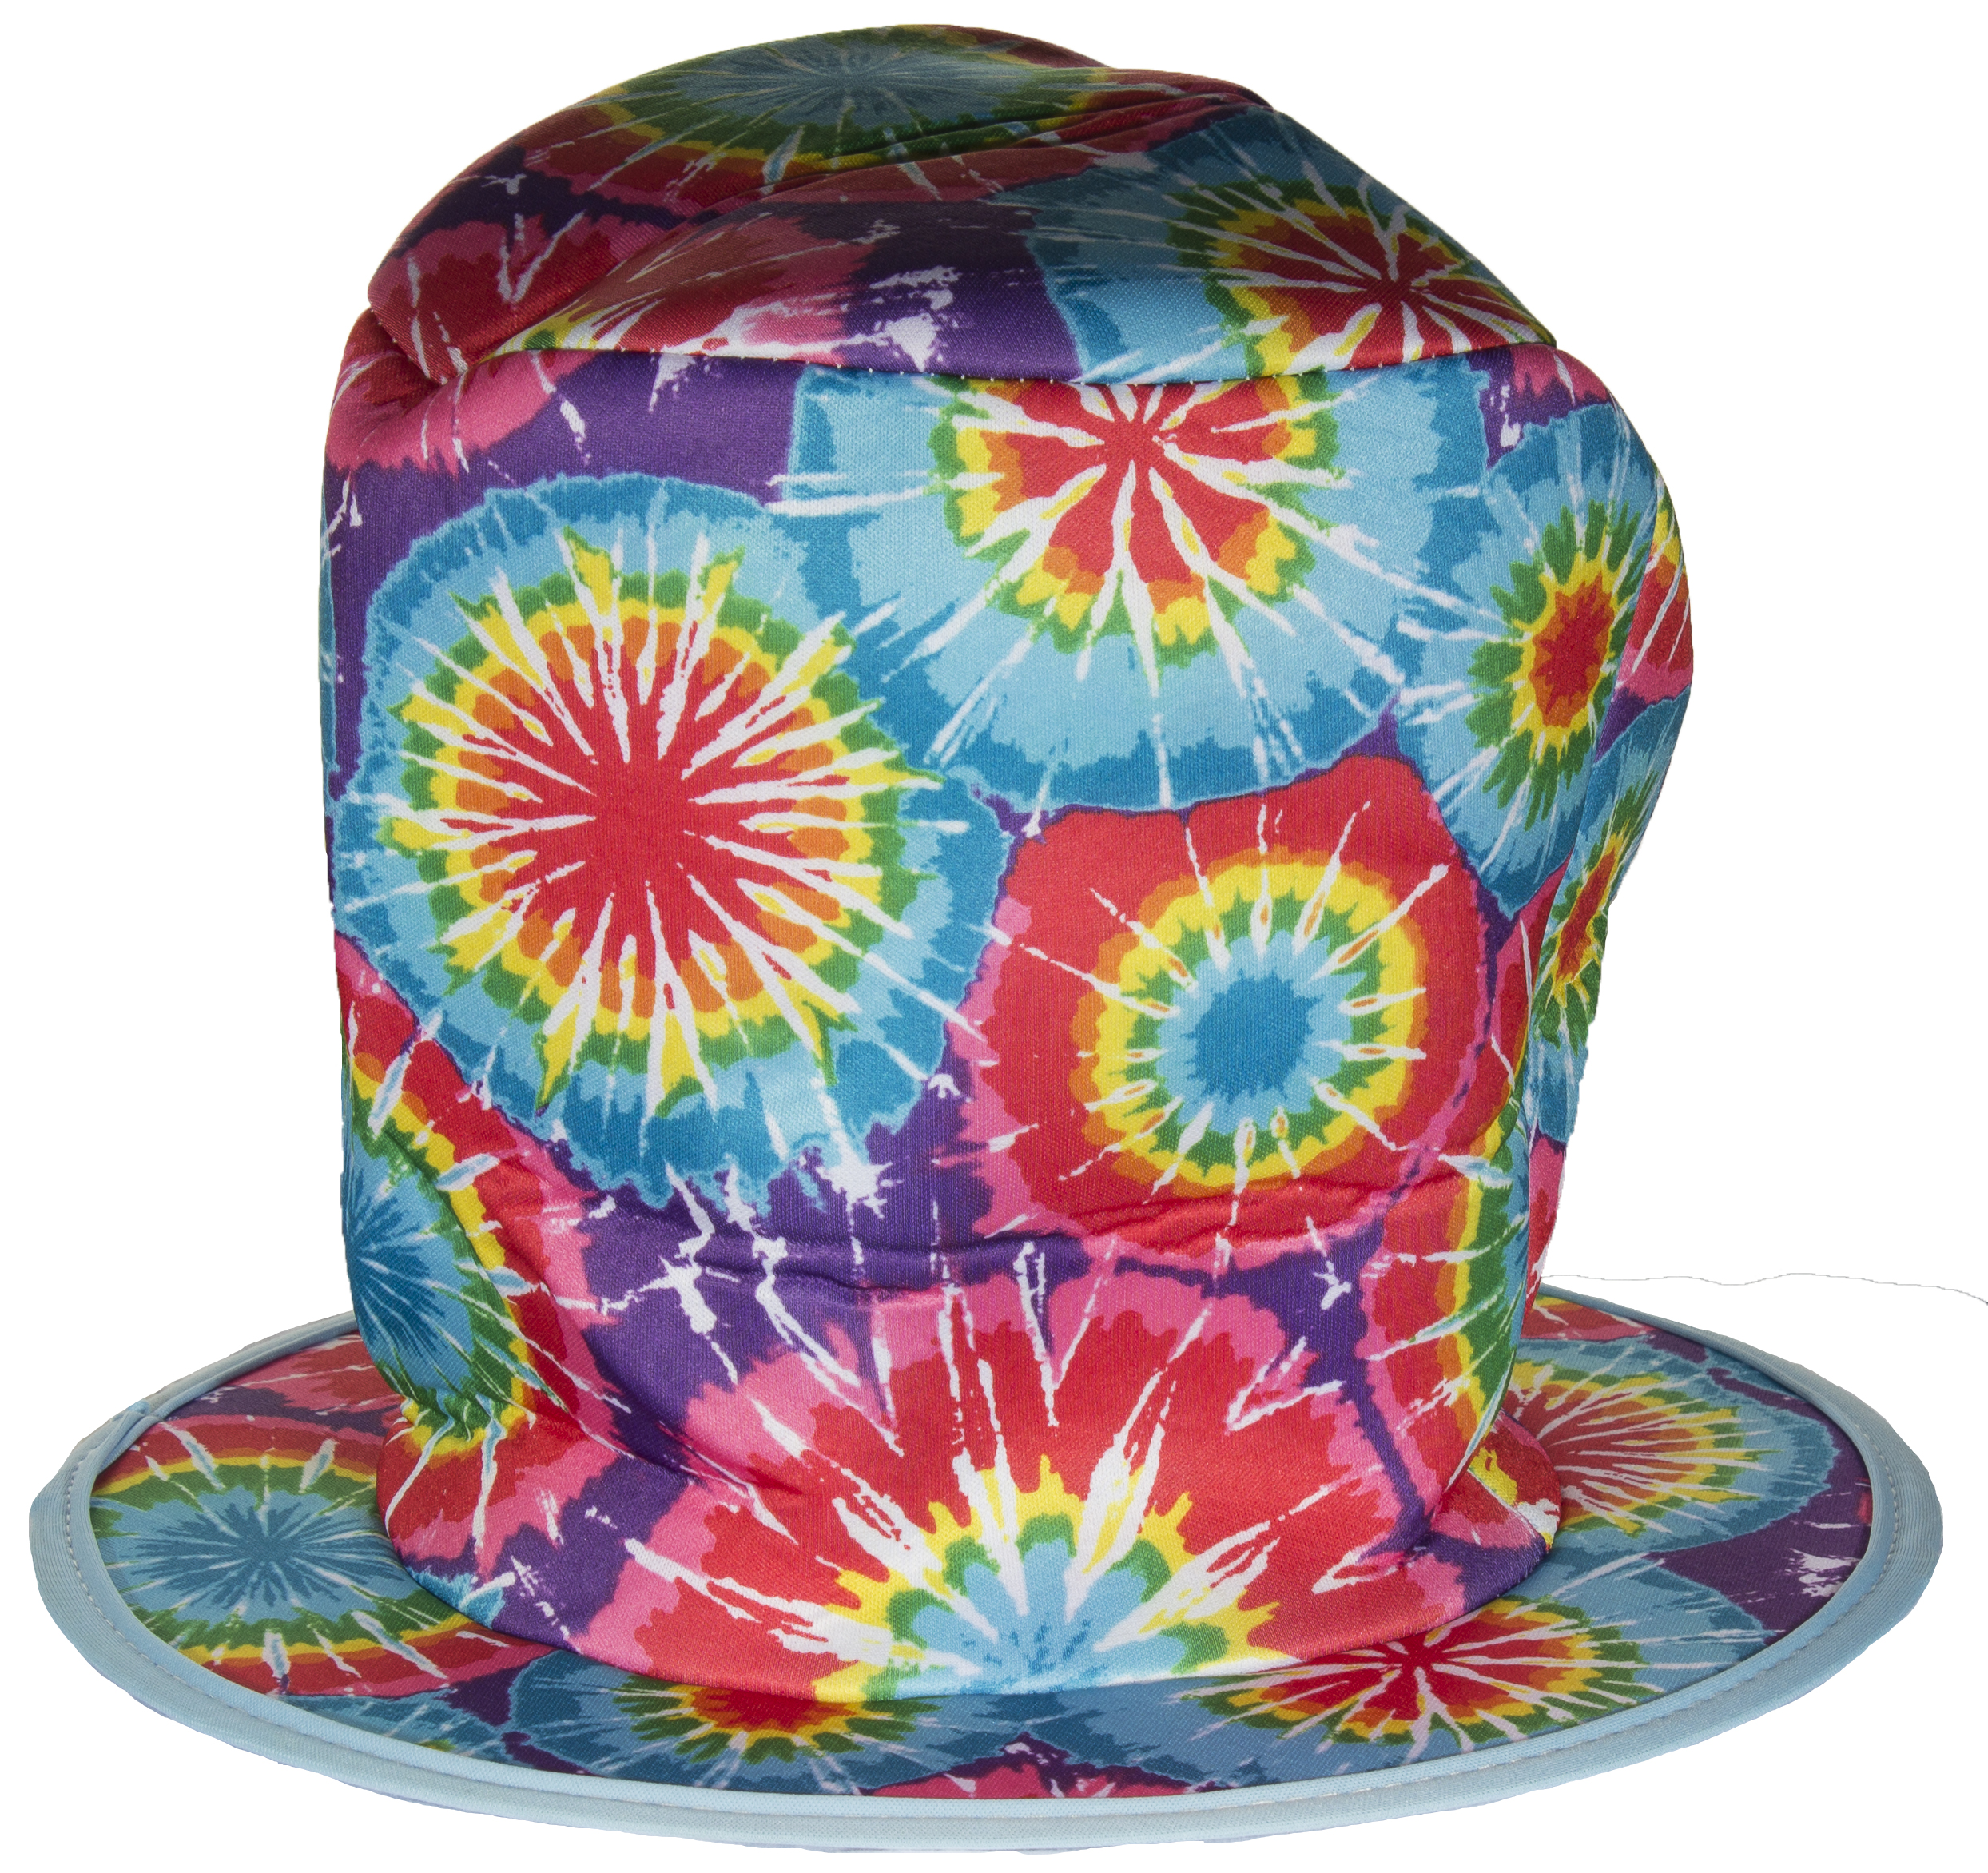 Costume Accessory- Tie-Dye Style Mad Hatter Felt Top Hat